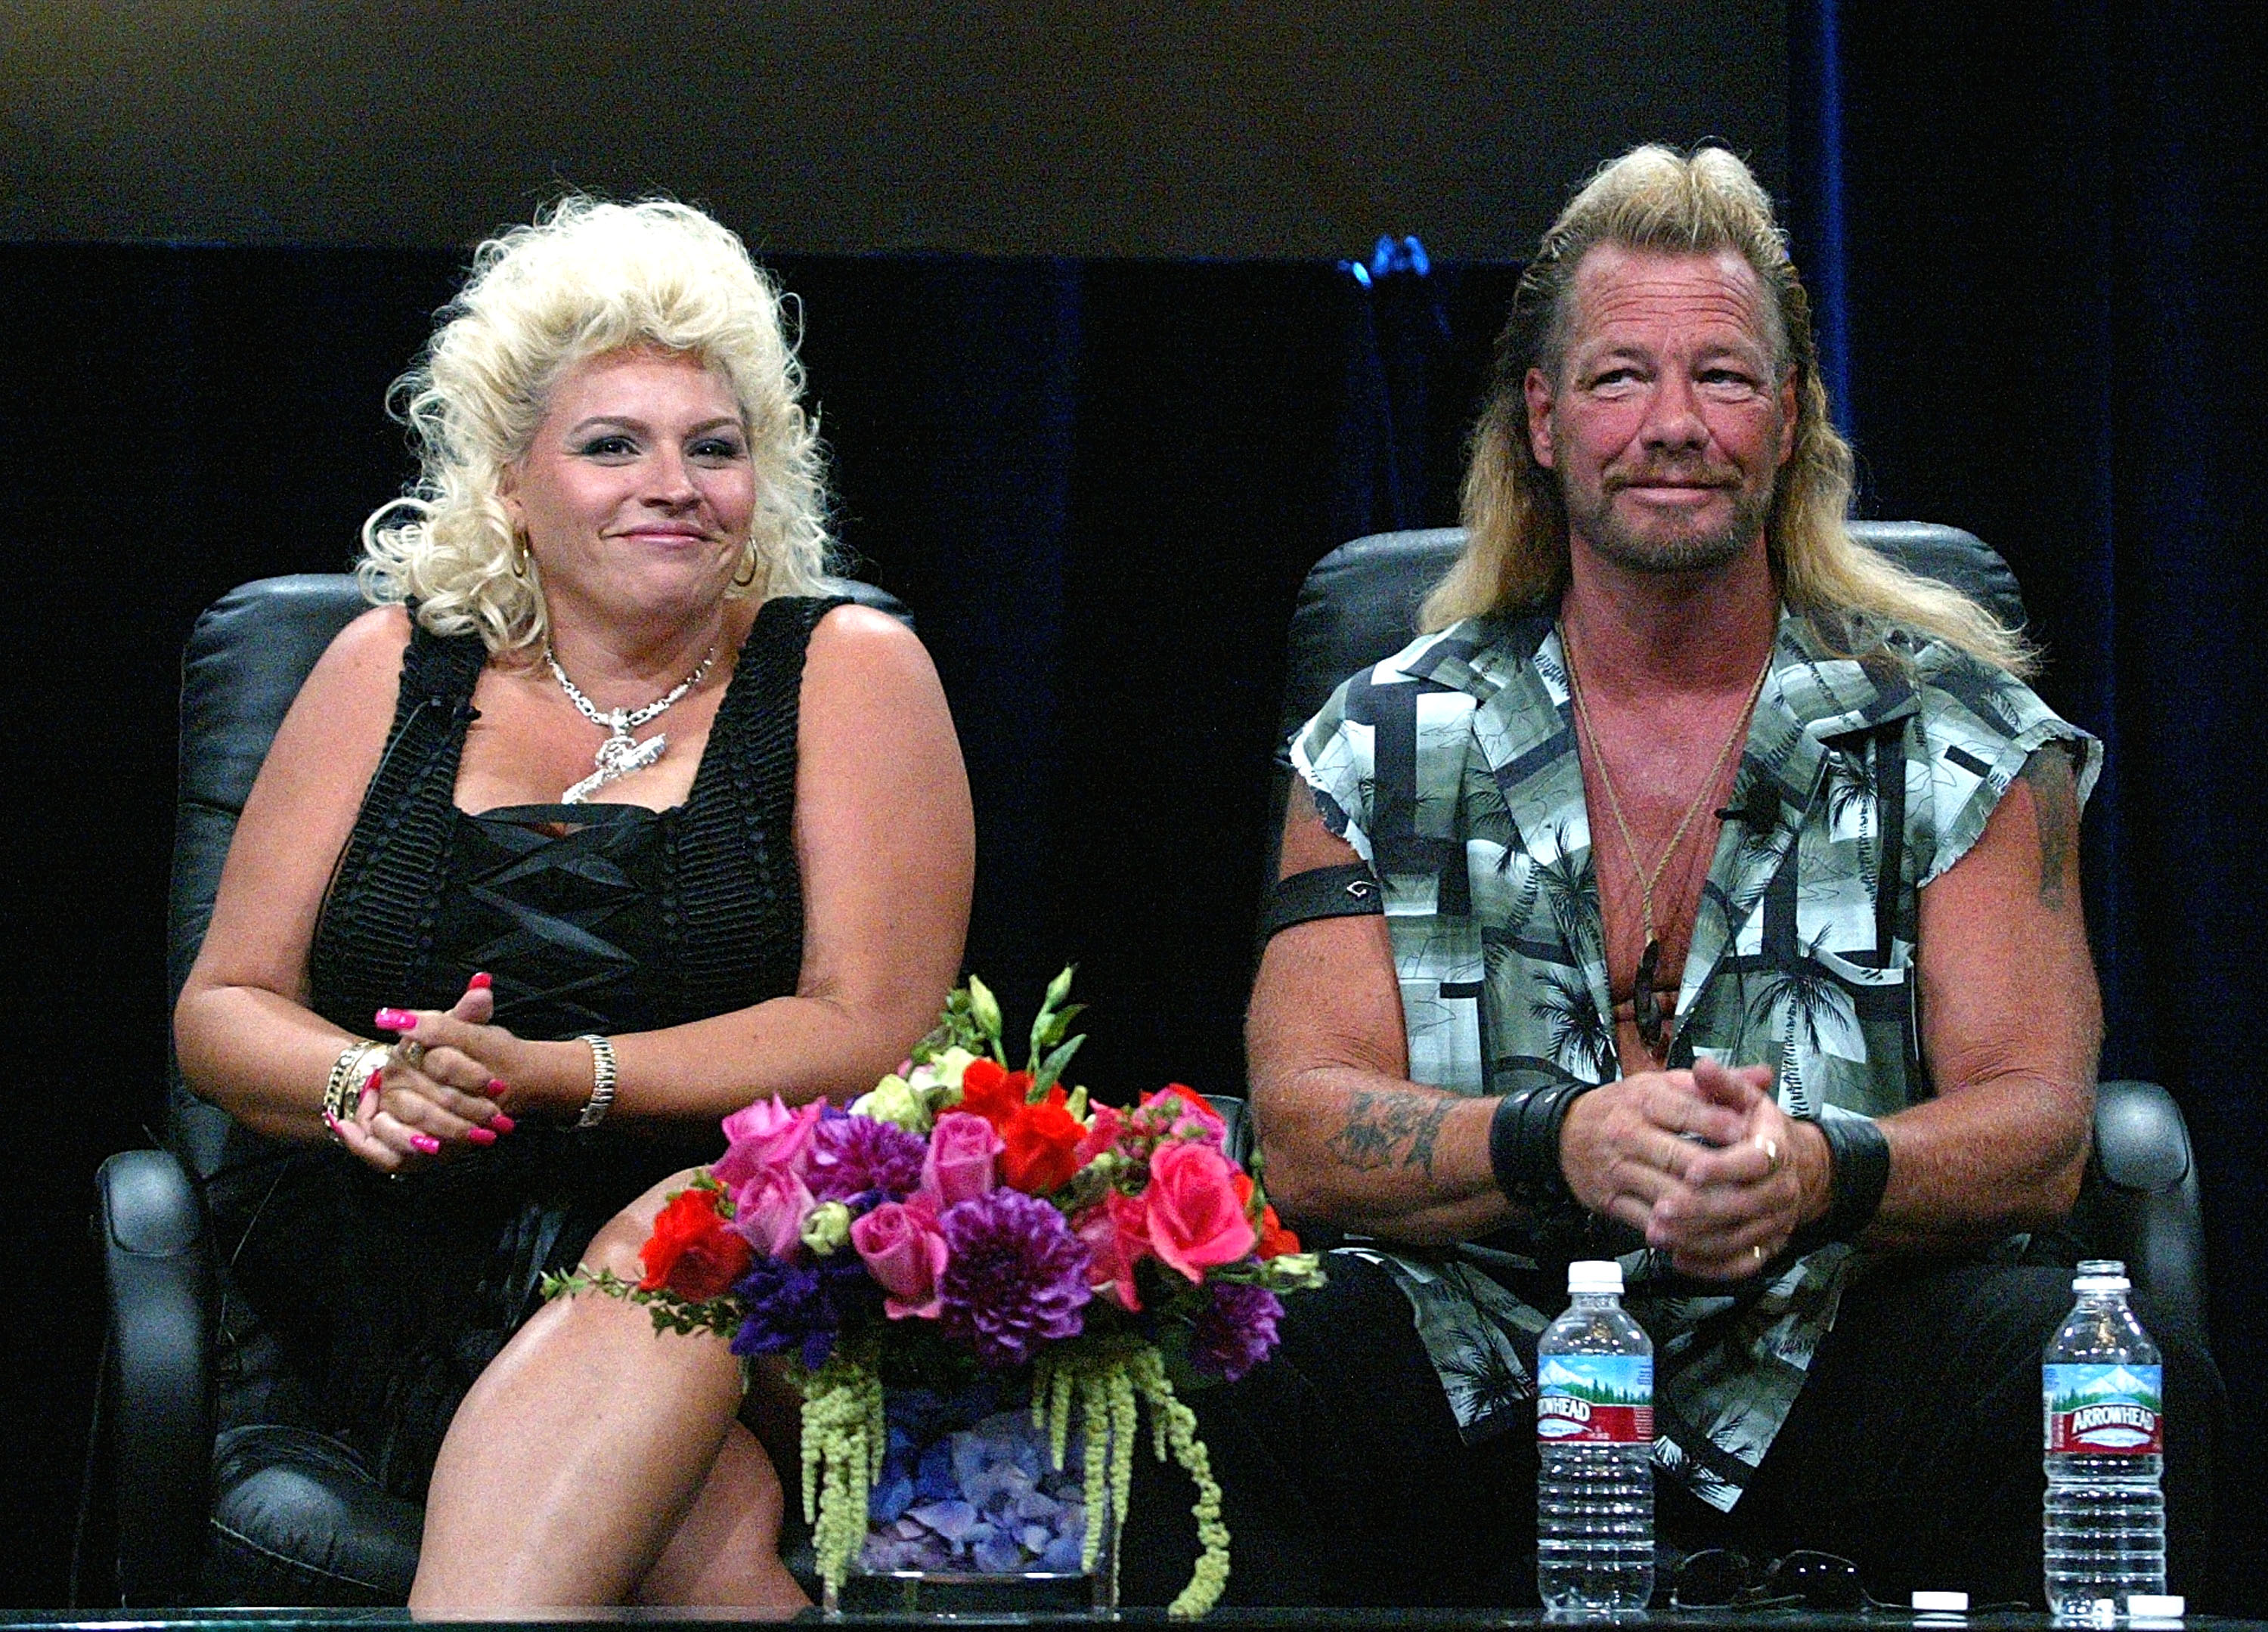 Wife of 'Dog the Bounty Hunter' in Medically Induced Coma